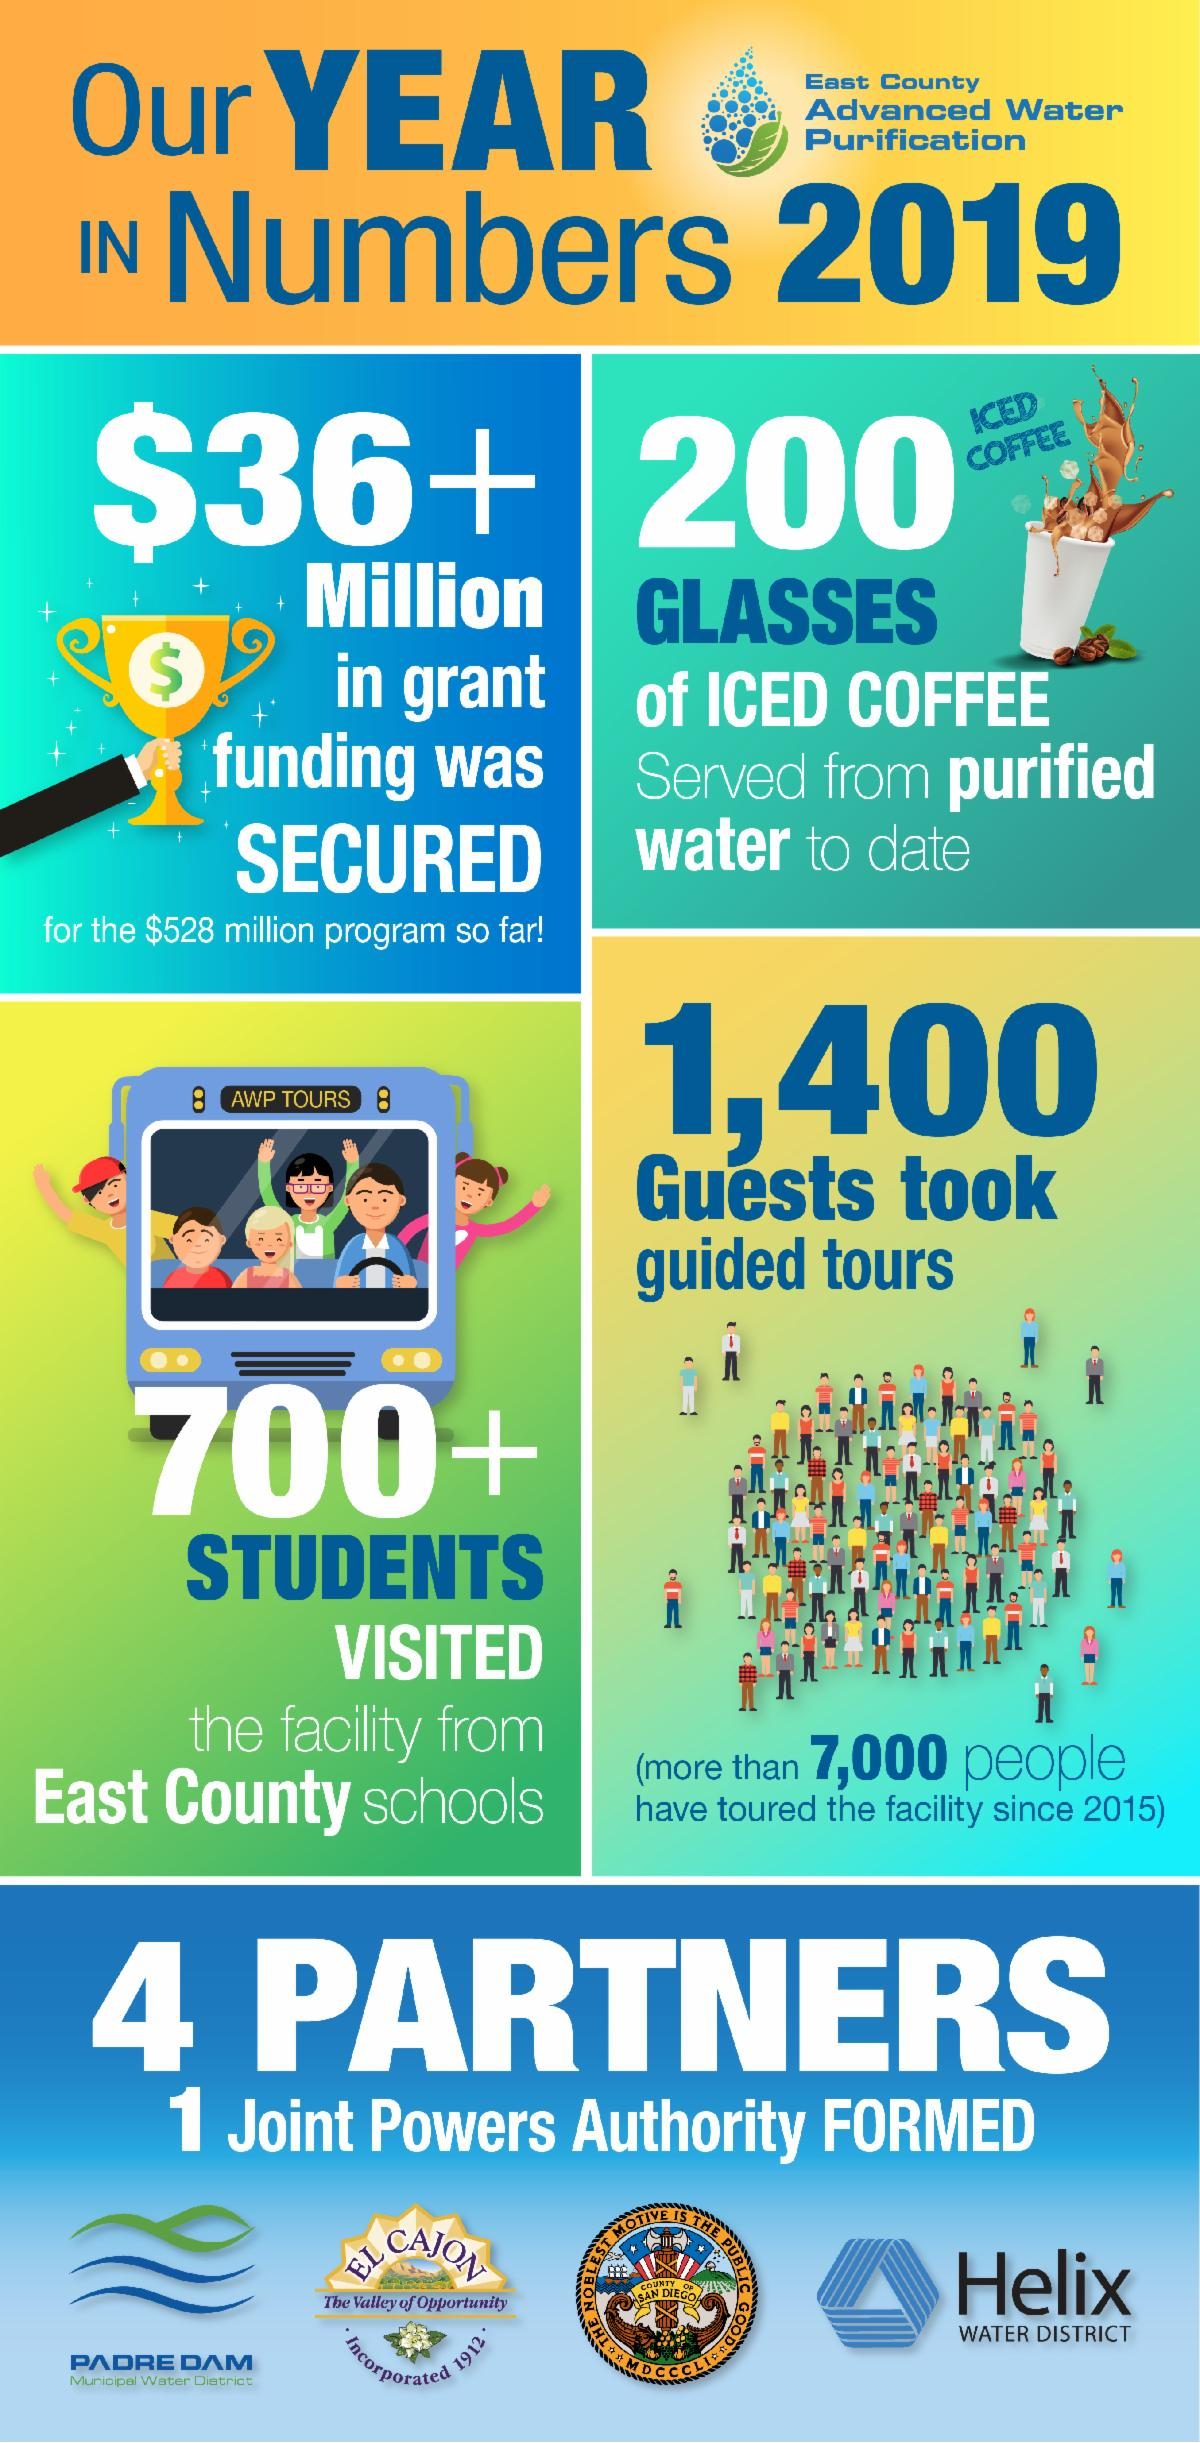 Infographic - 2019 By The Numbers. 36 million dollars in grant funding. 200 glasses of iced coffee served from purified water. 1400 guests took a tour. 700 students visited. 4 Partners and 1 Joint Powers Authority formed.